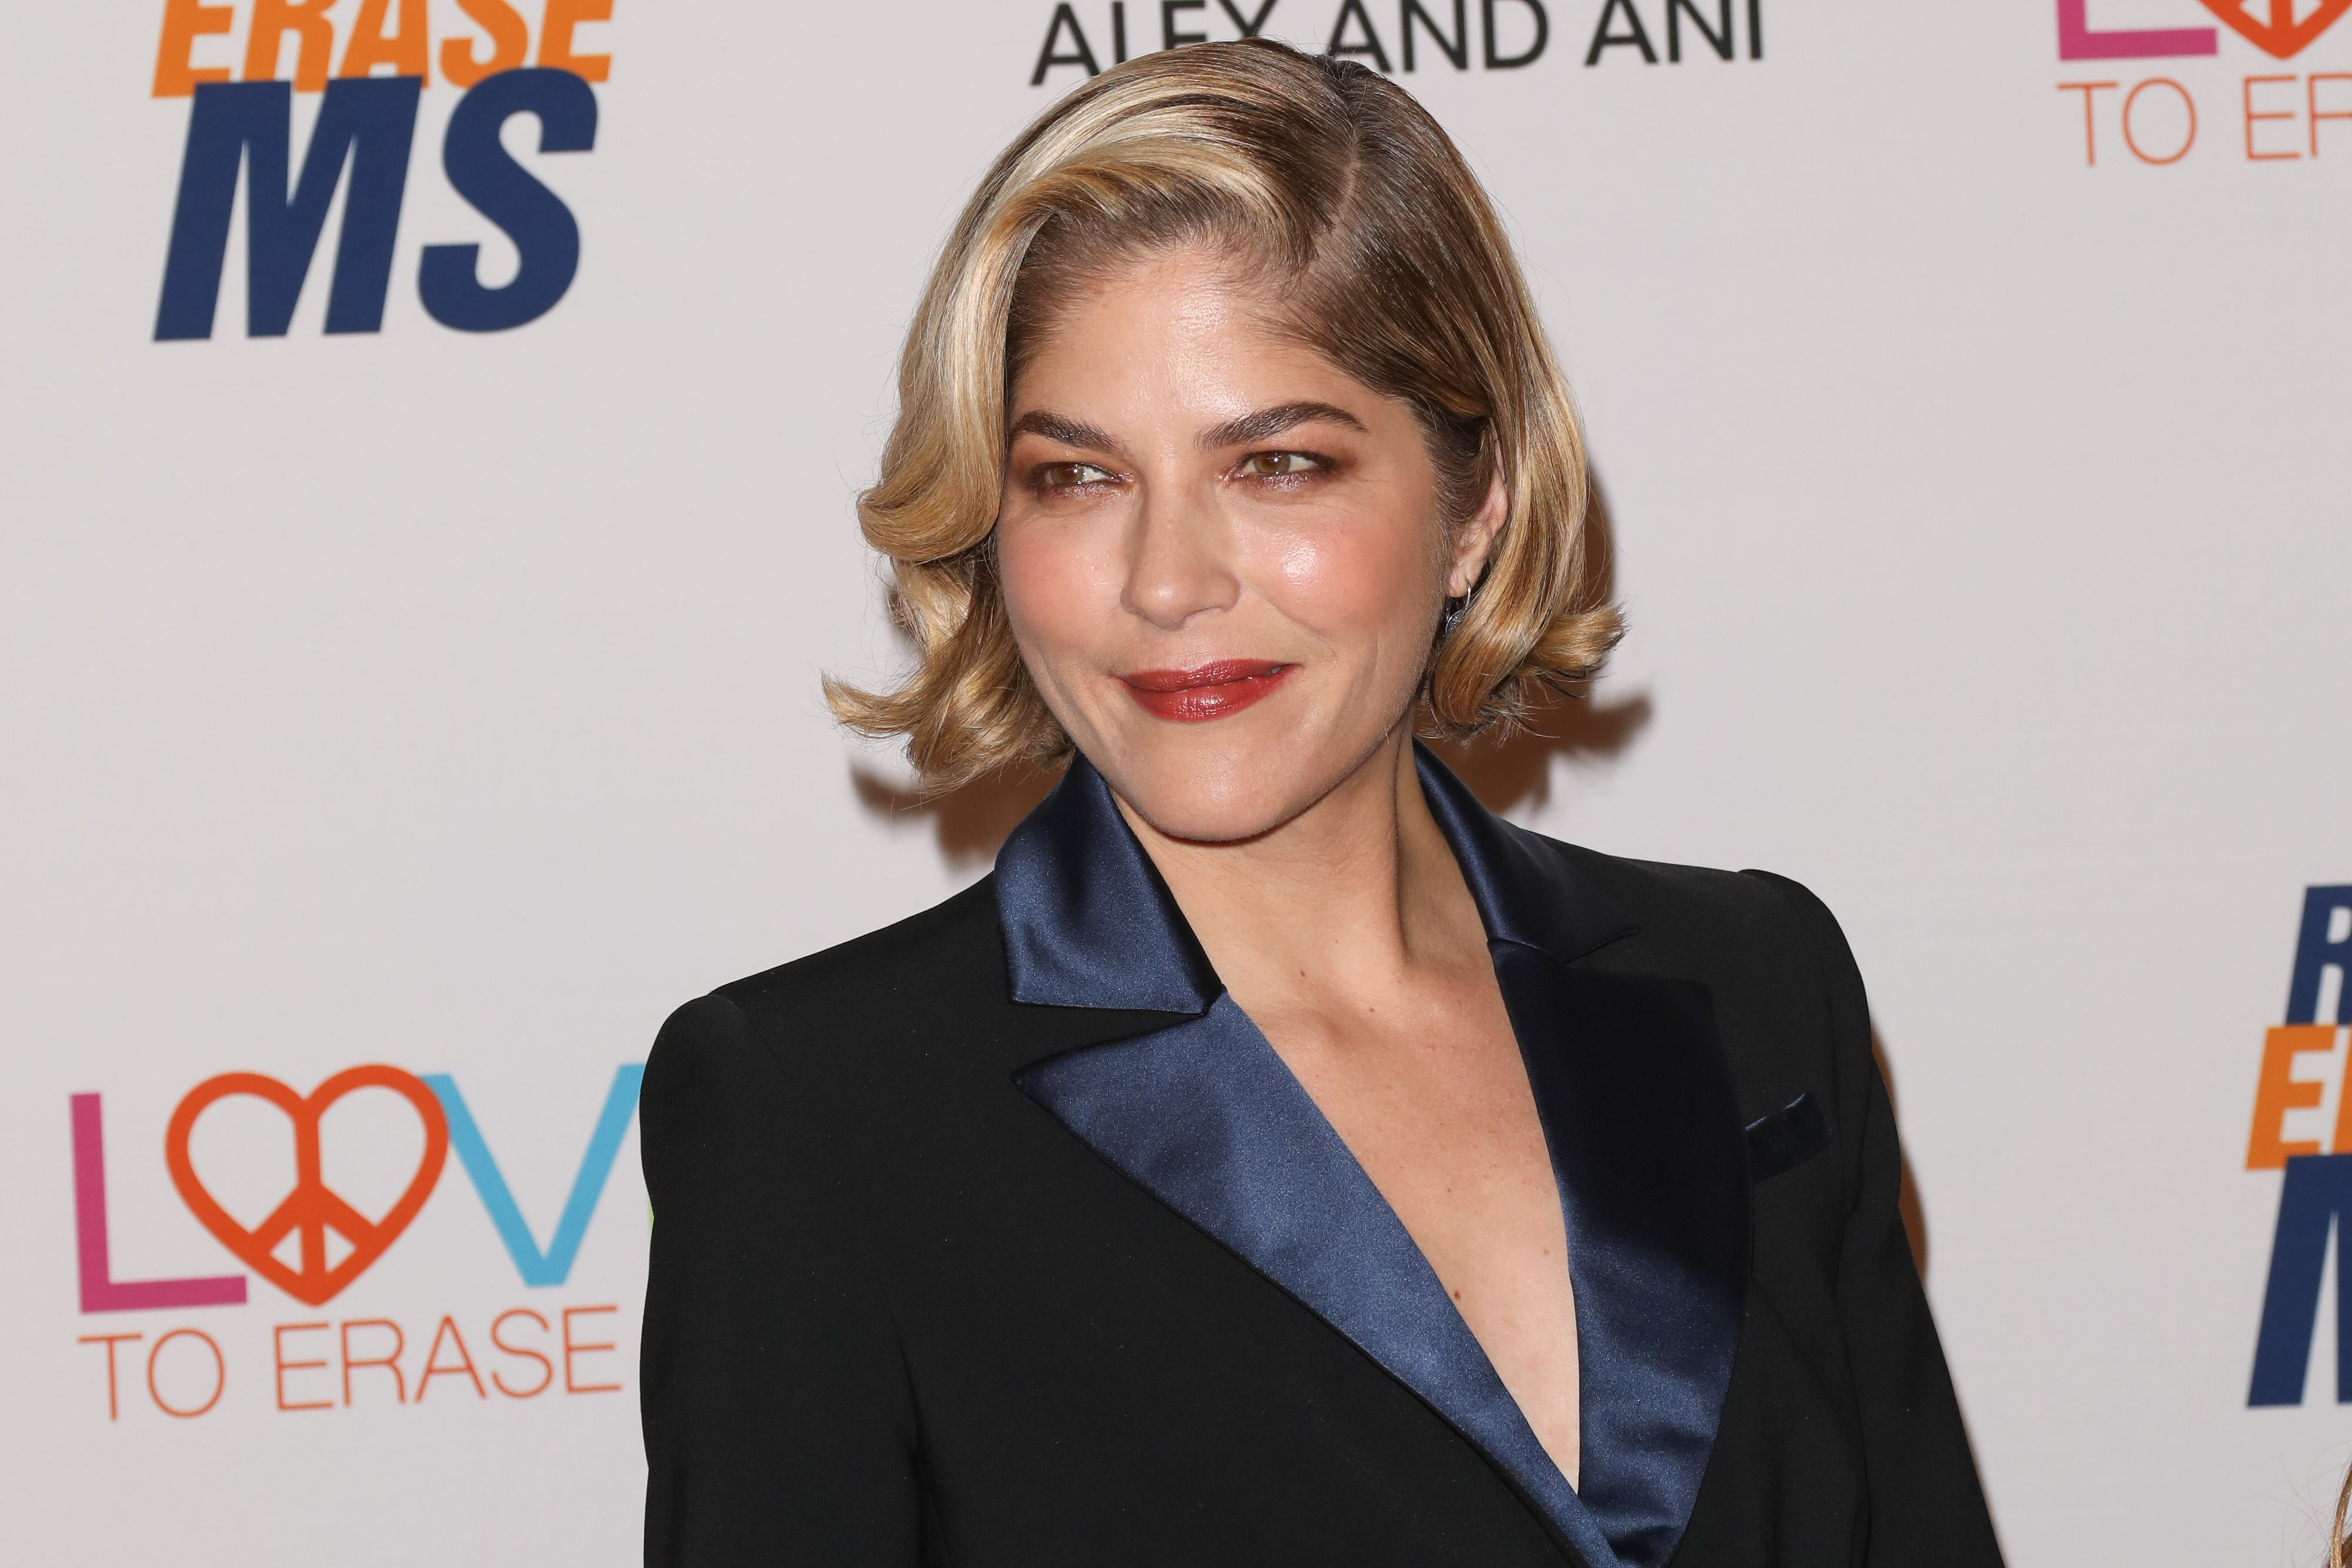 Selma Blair Just Posted a Bald Photo—With Her Bare Butt Showing